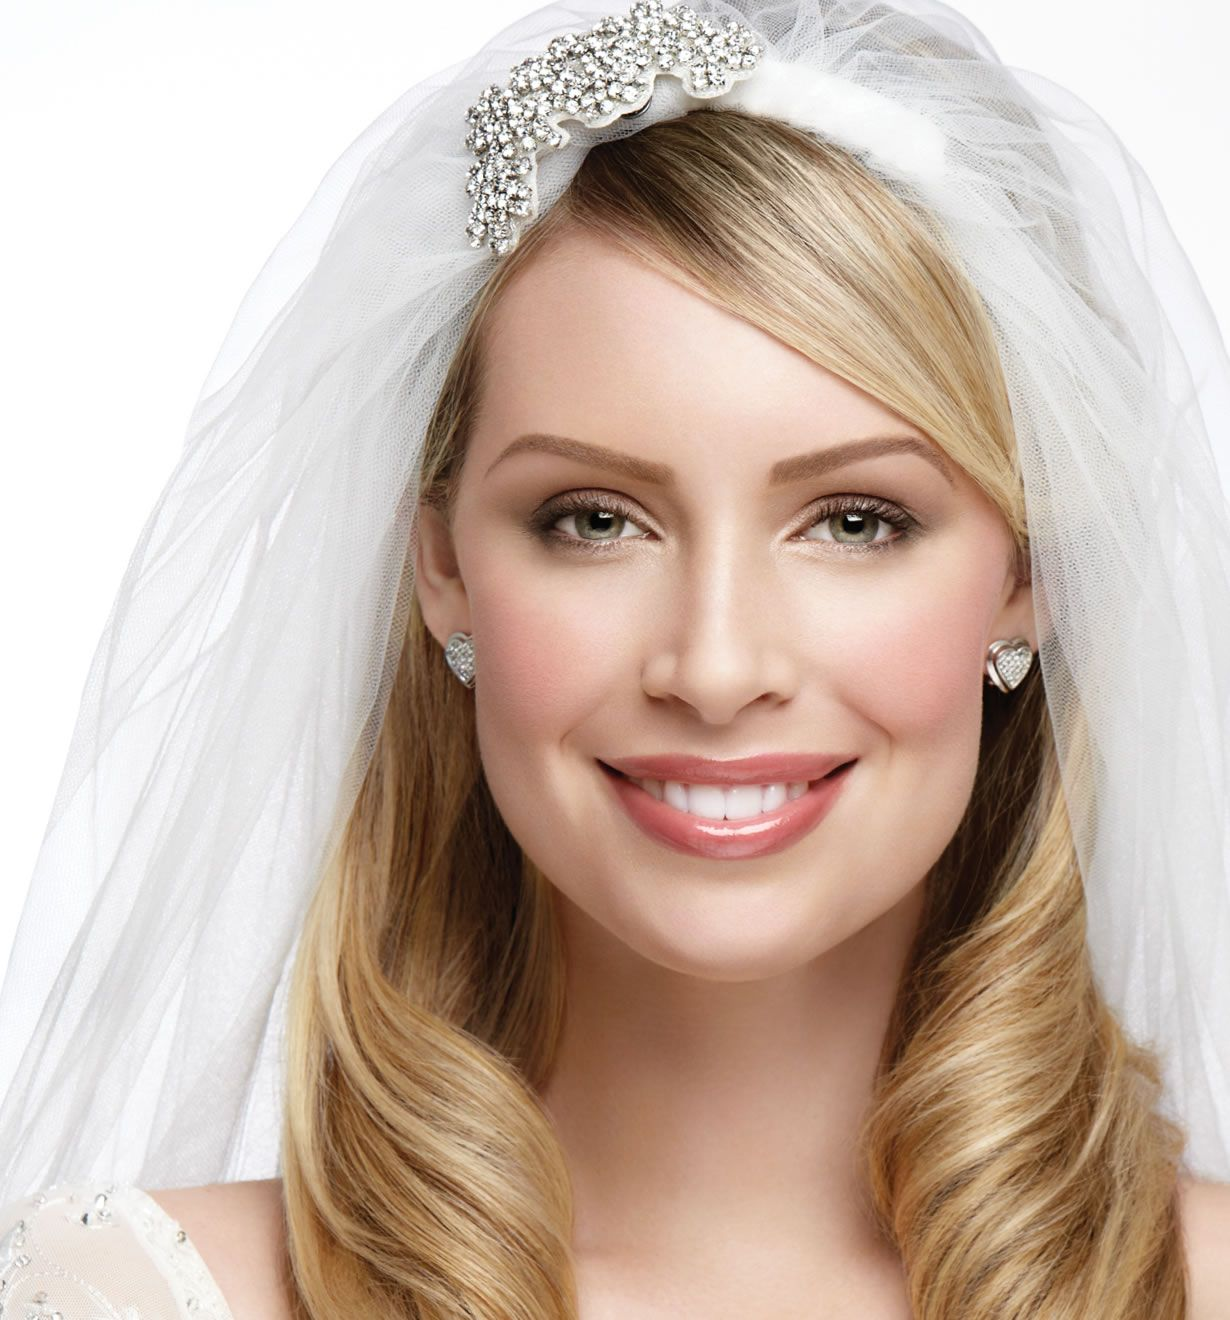 Merle Norman Does Bridal Makeovers. Make Up For The Bride